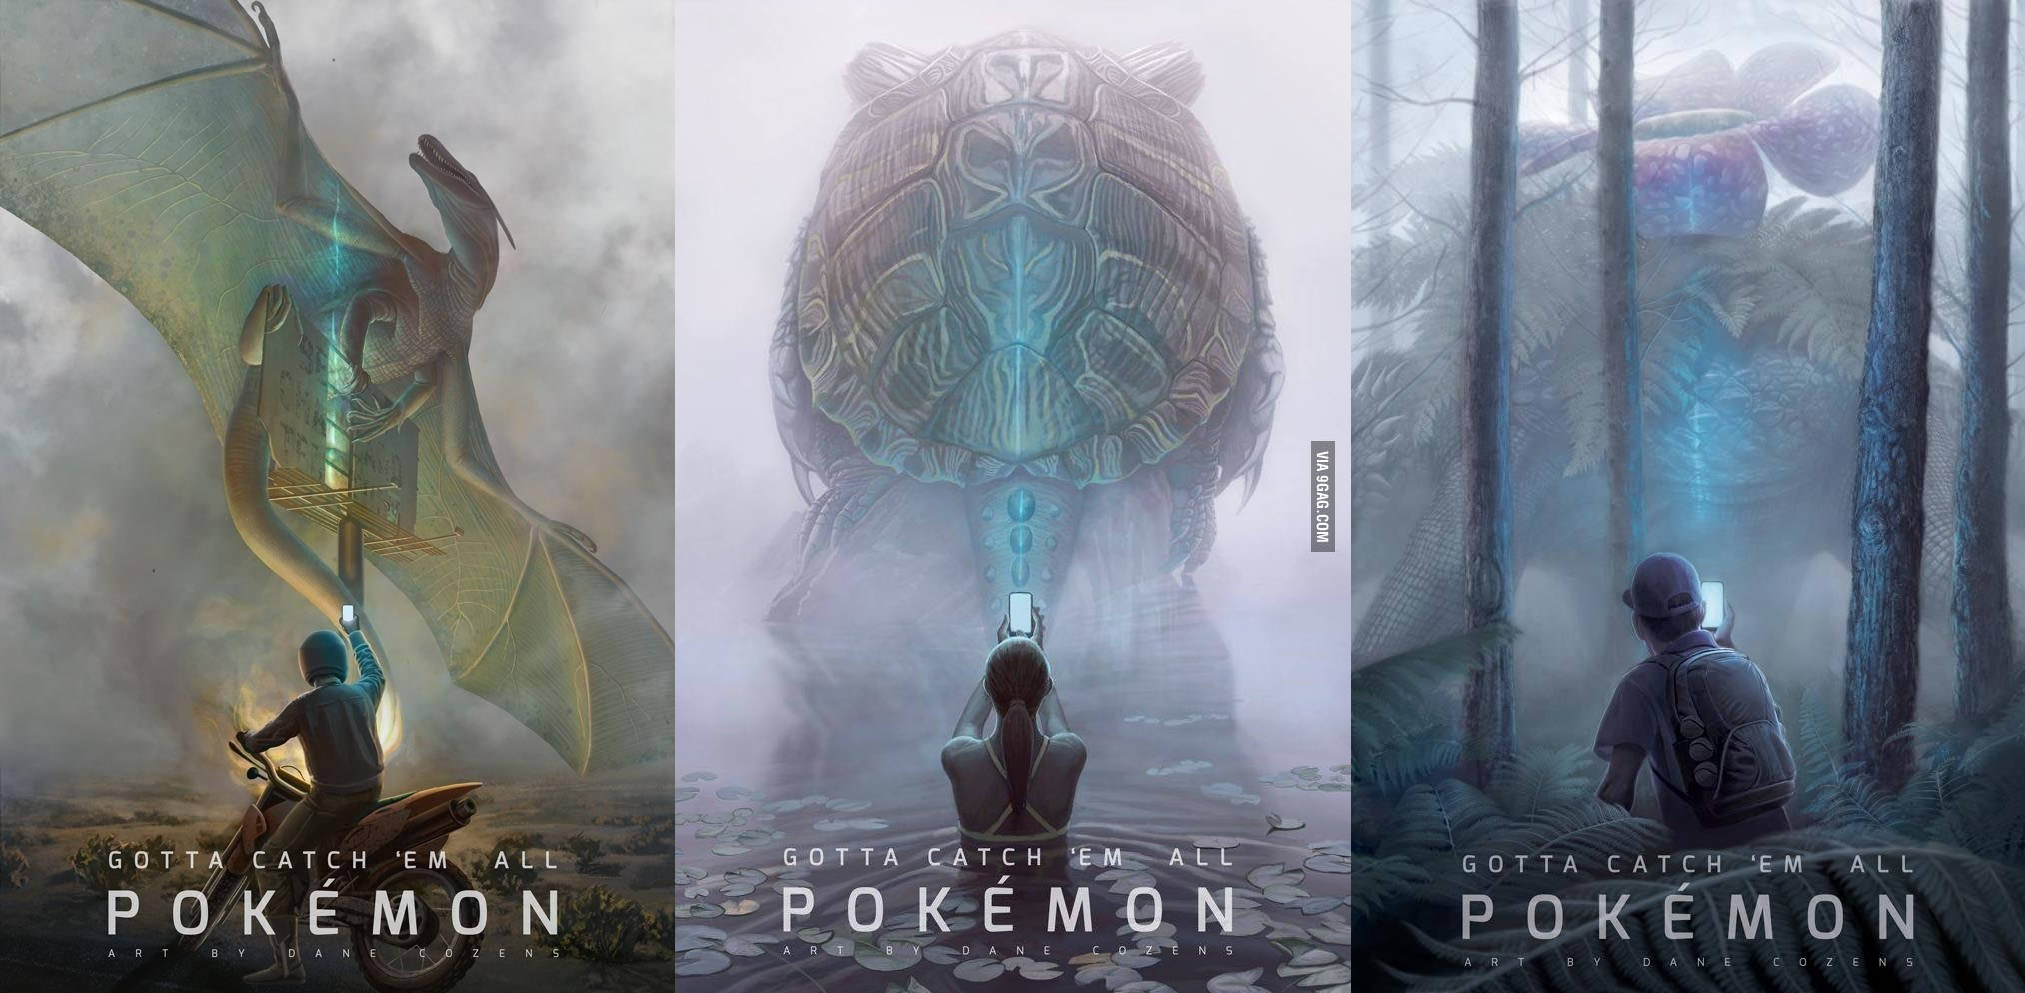 pokemongo-fan-art